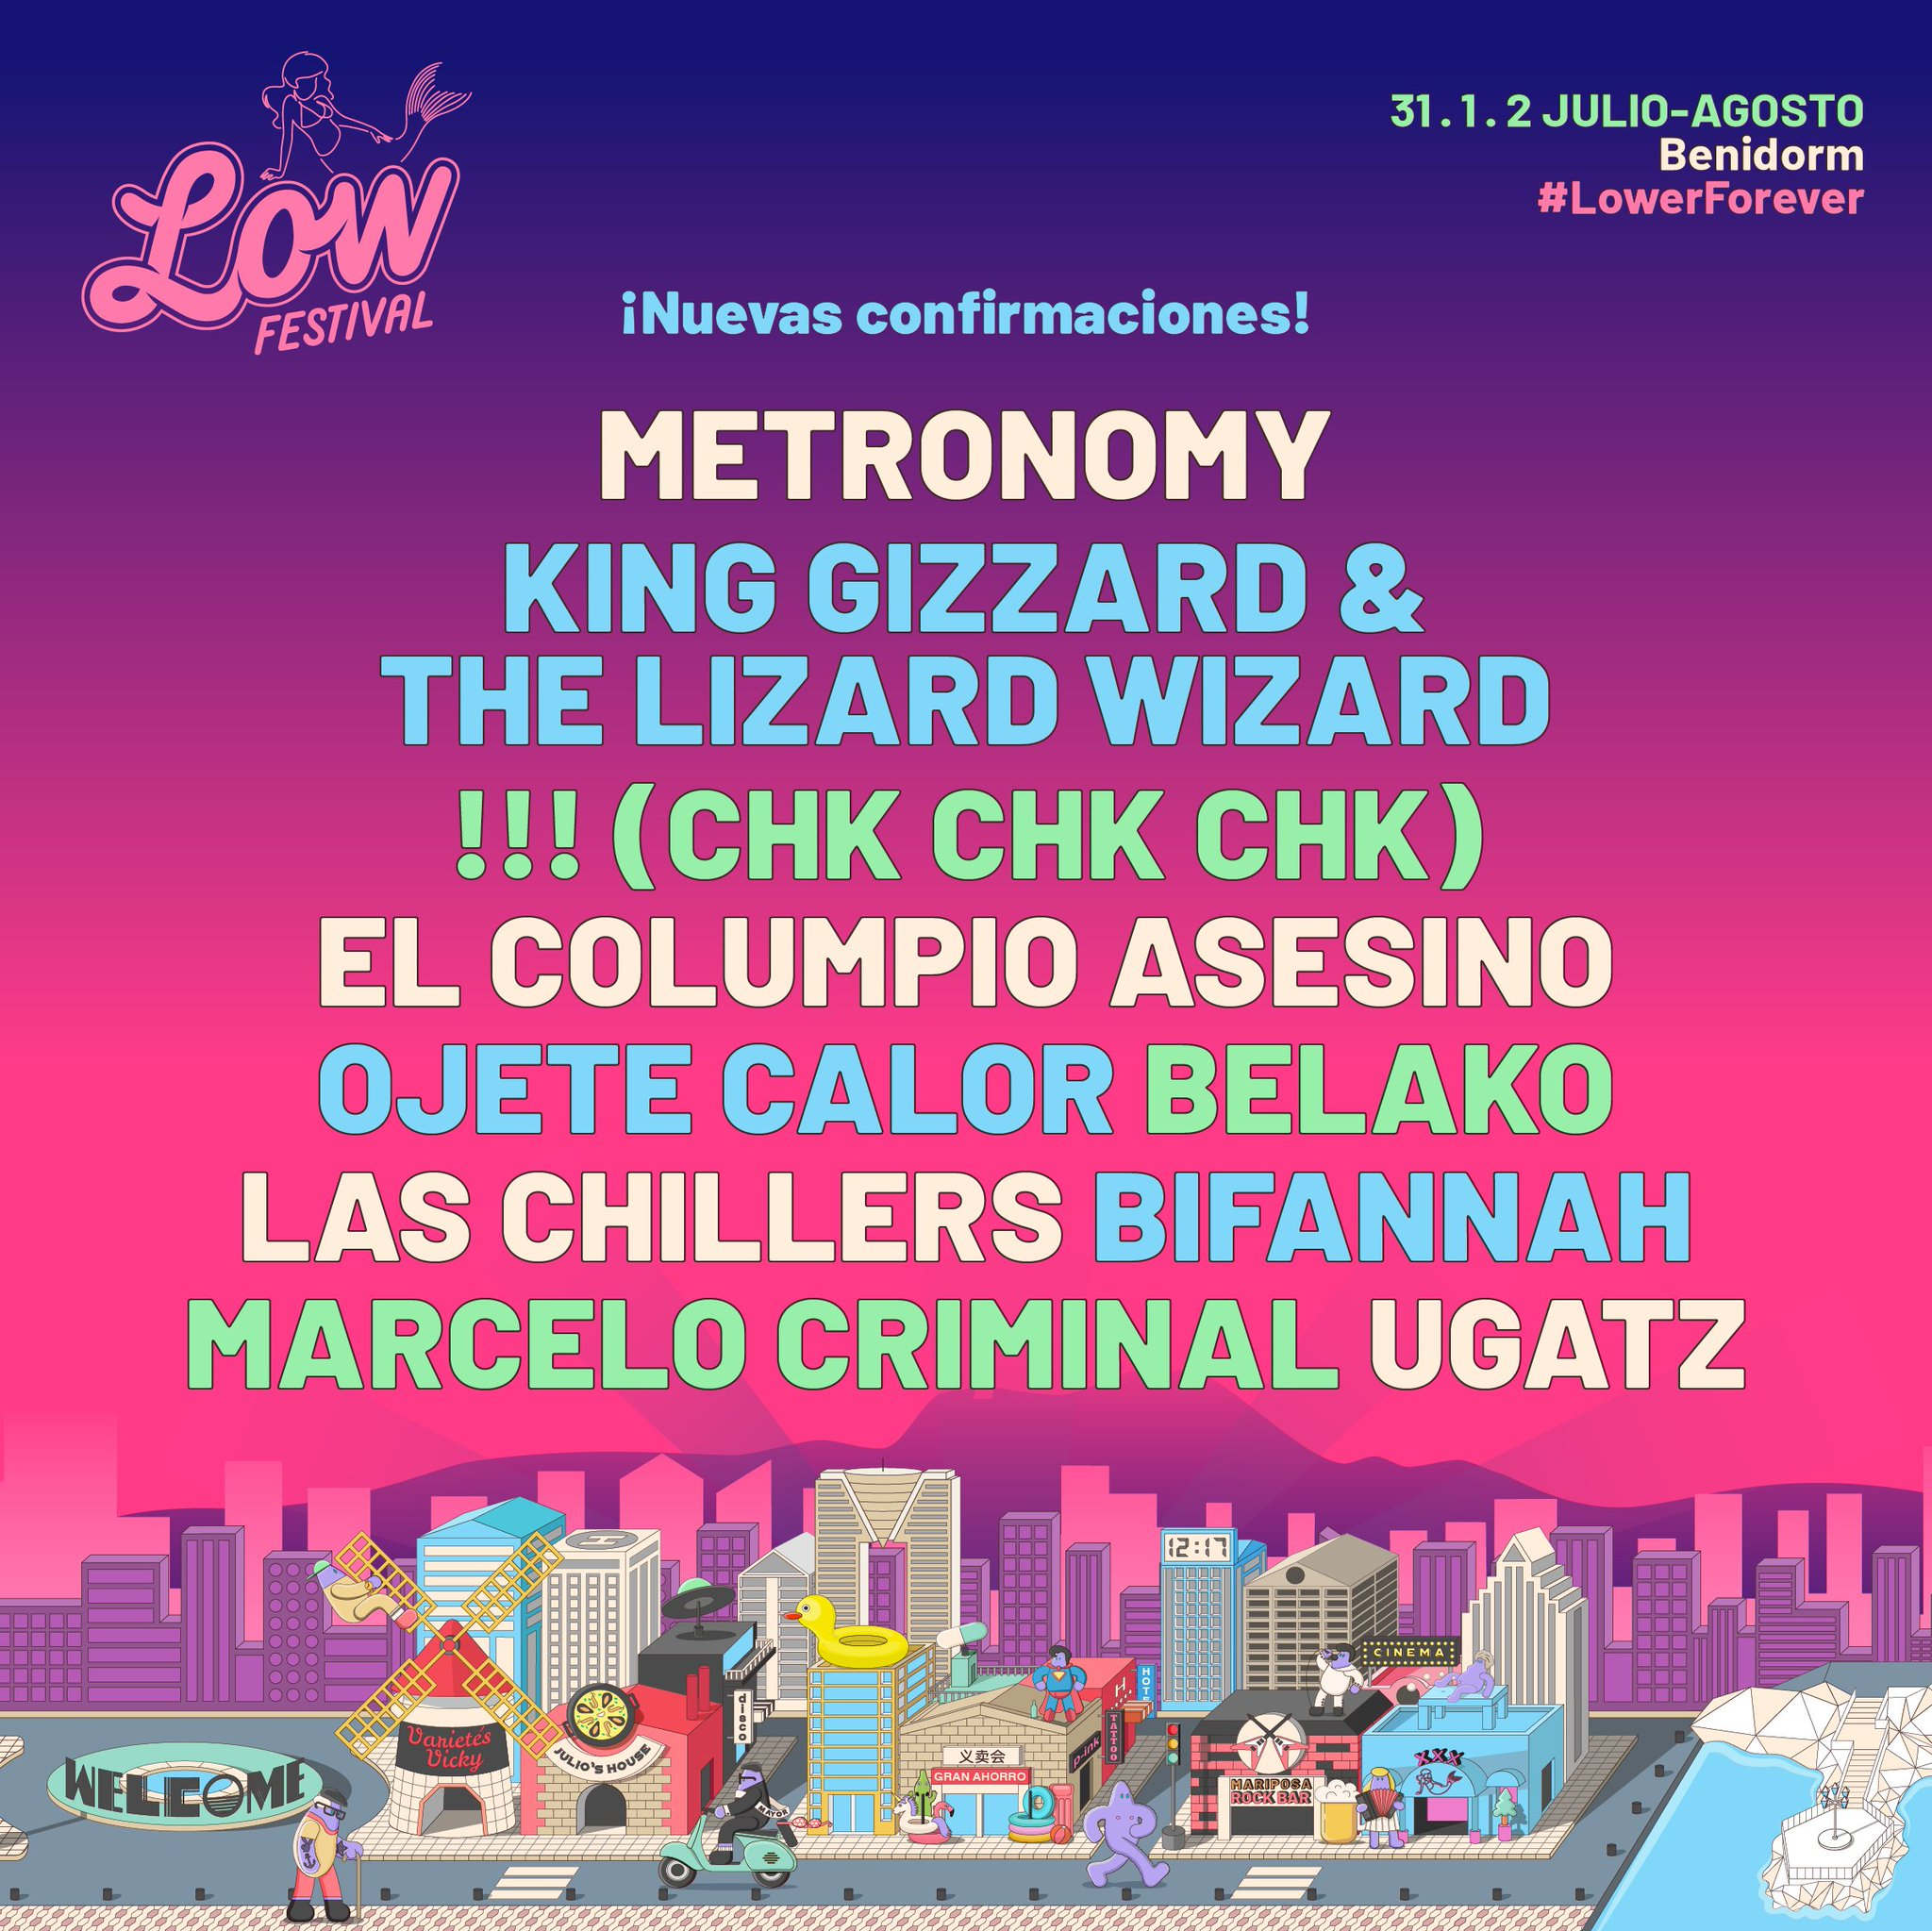 Low Festival 2020: King Gizzard, Fuzz, Primal Scream, Temples, Cigarettes after sex... EQfKUf3XkAAvcRs?format=jpg&name=large